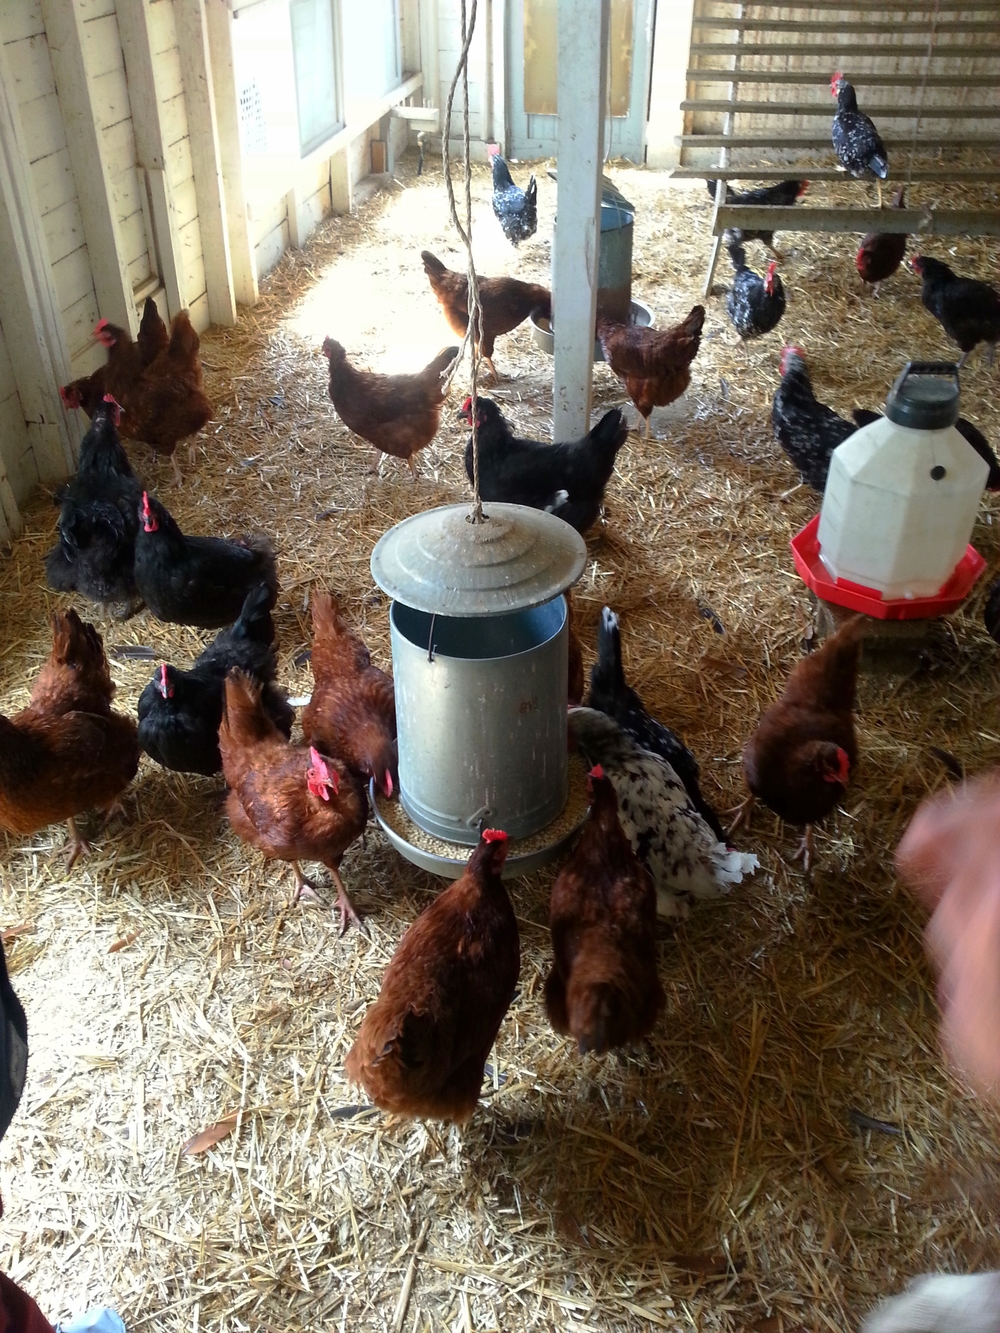 Hanging out in the hen house